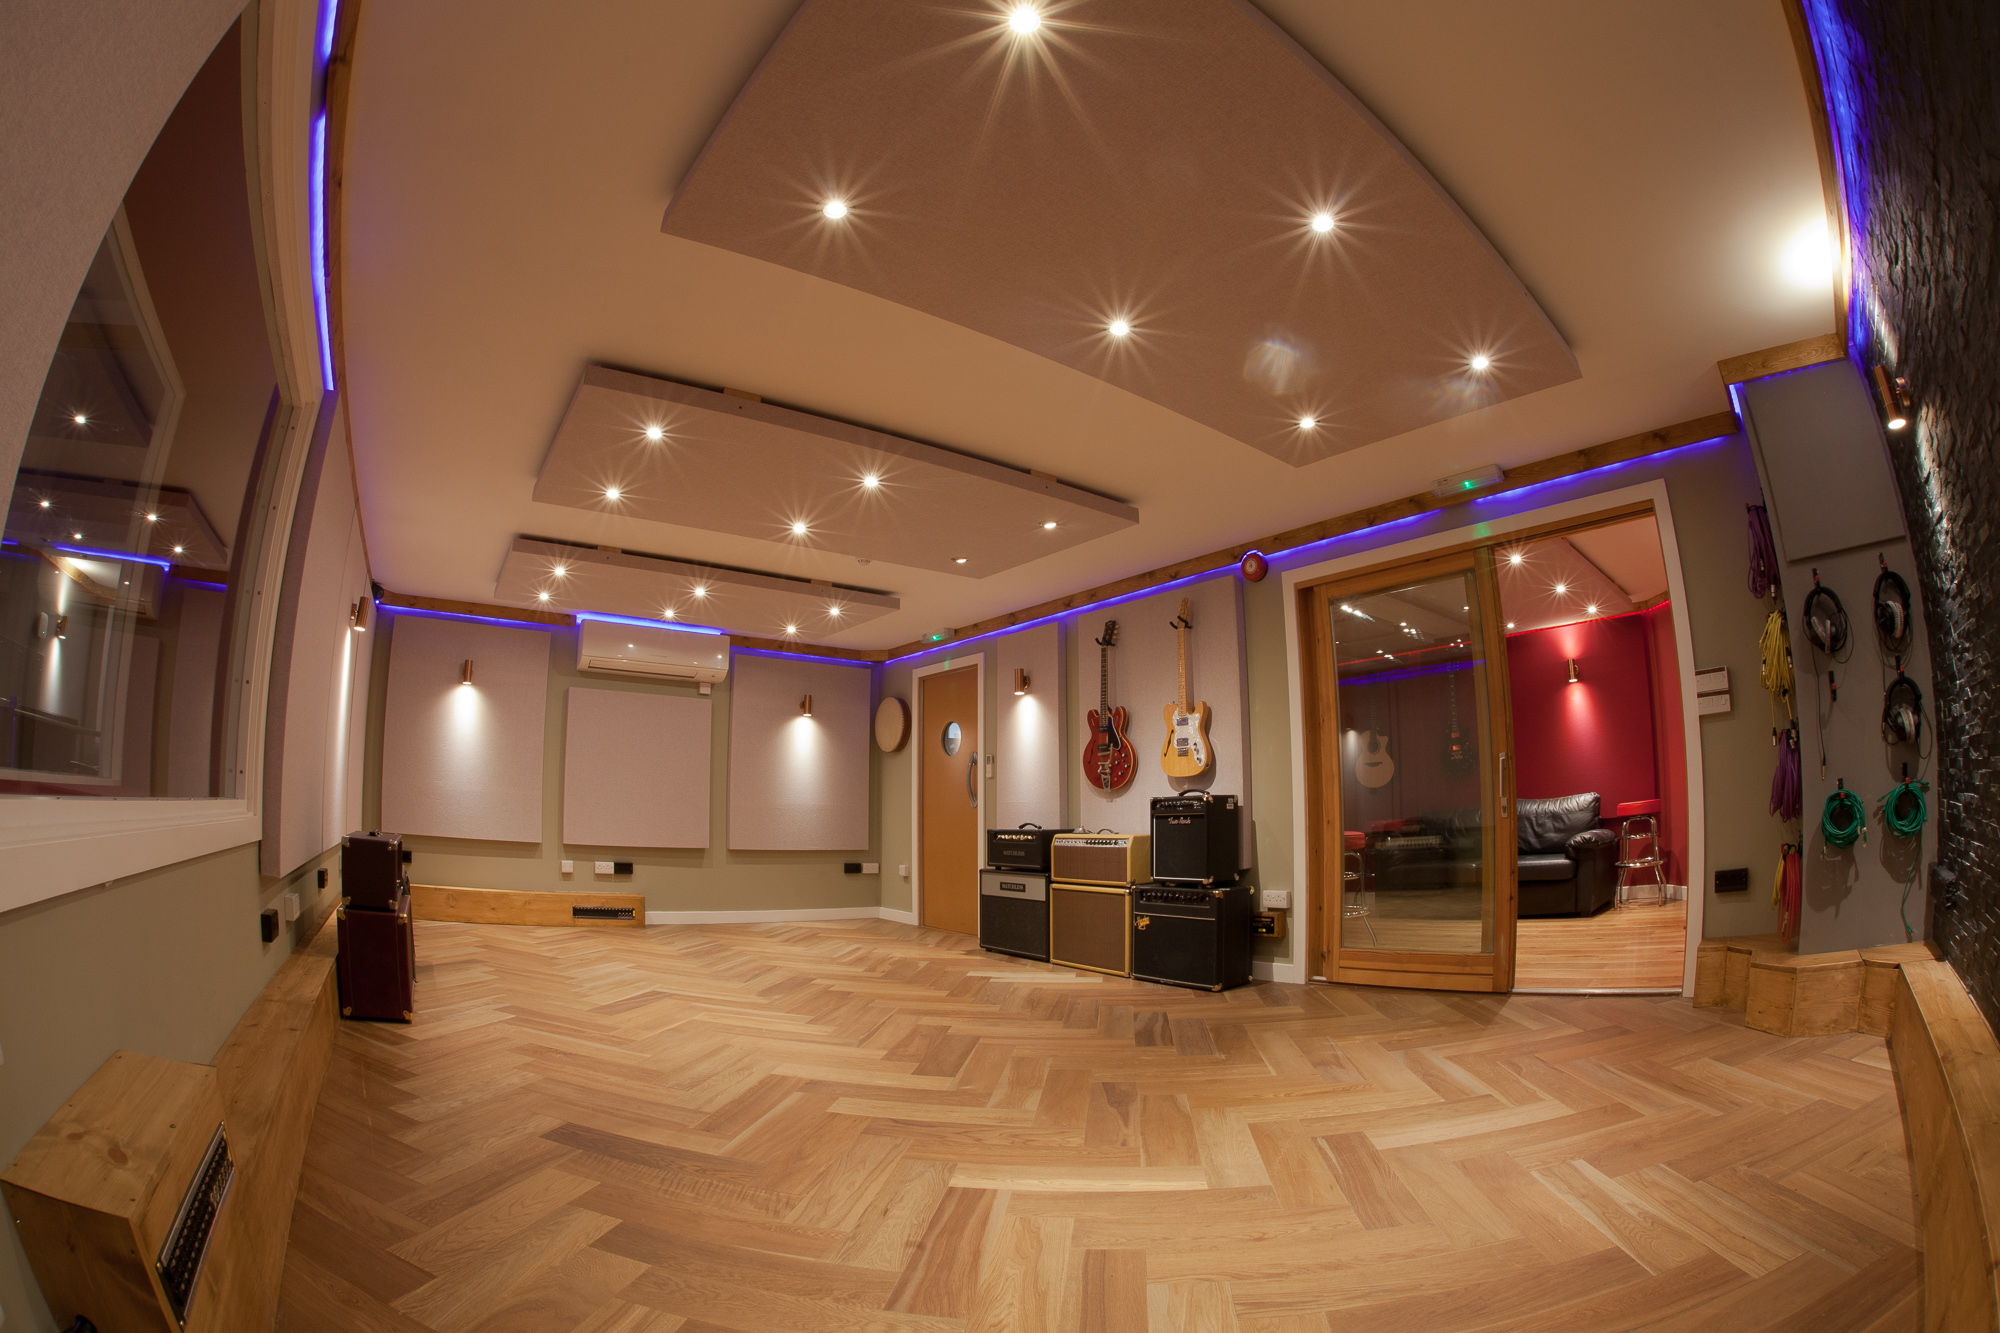 Rooms at silk mill recording studio neve ssl for The family room recording studio